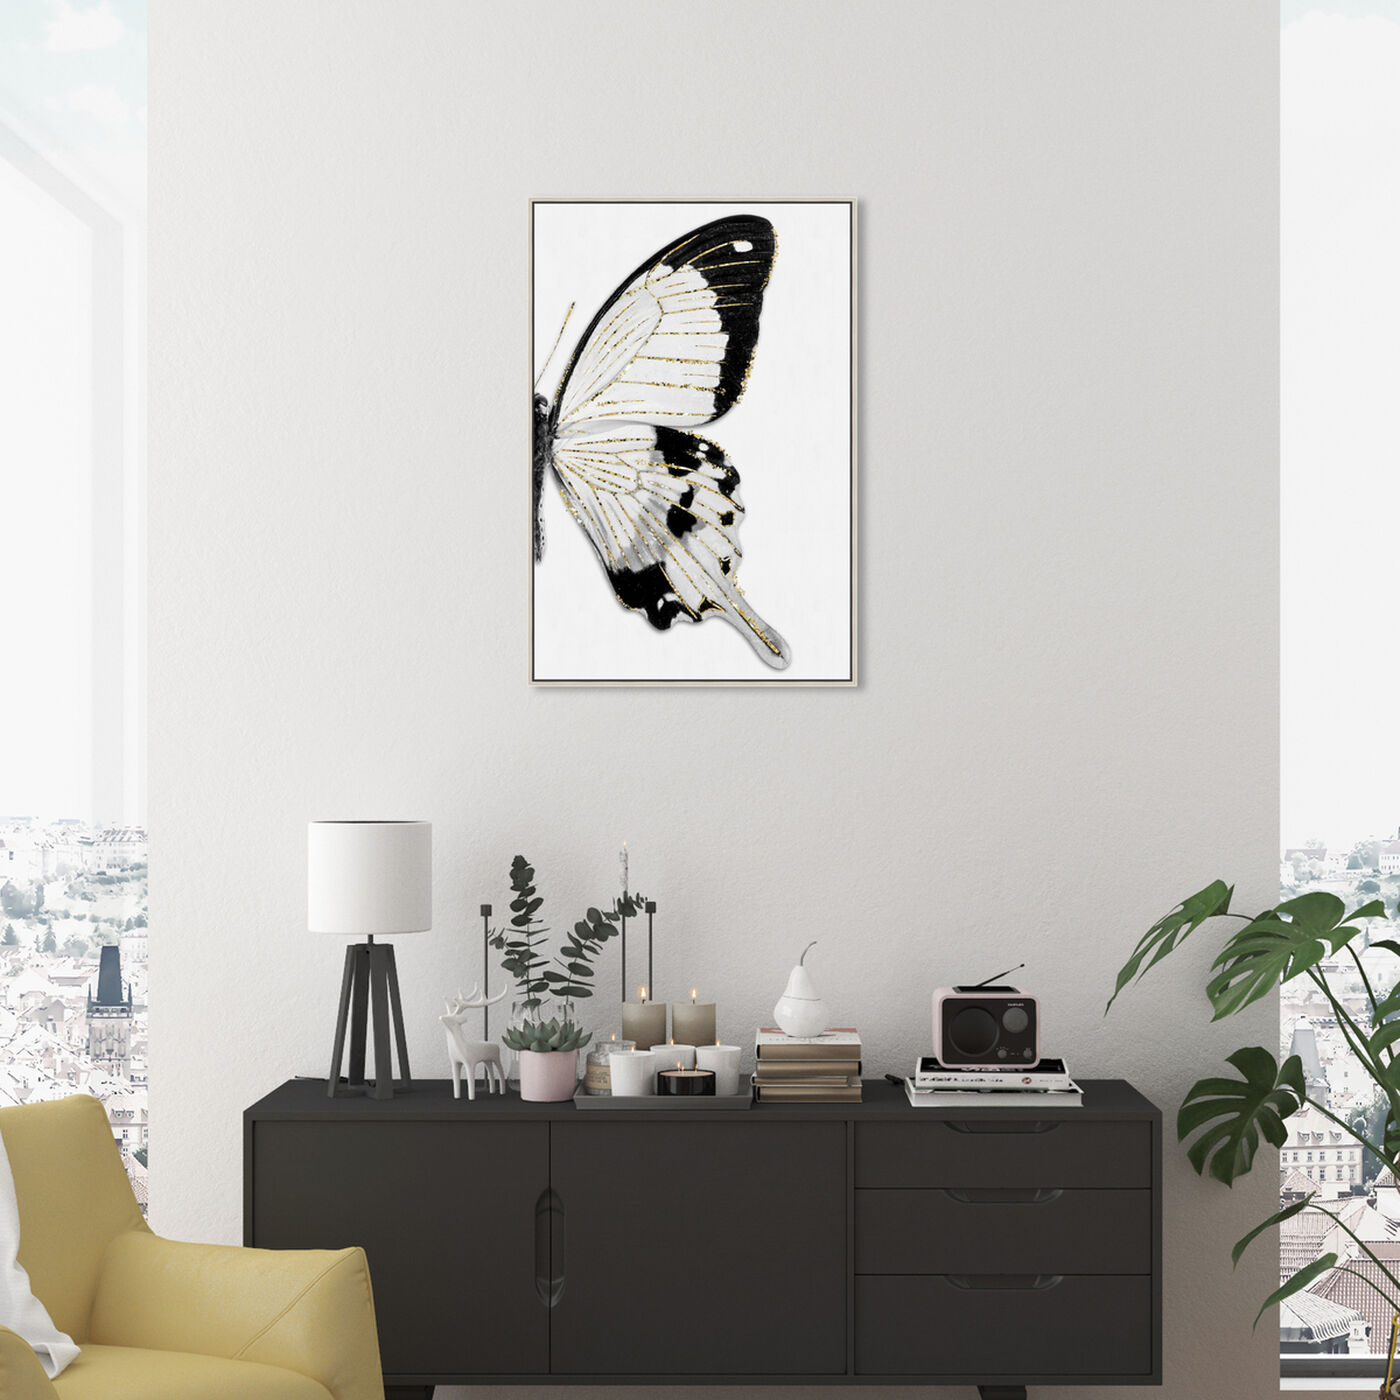 Hanging view of Monochrome Glitter Butterfly I featuring animals and insects art.